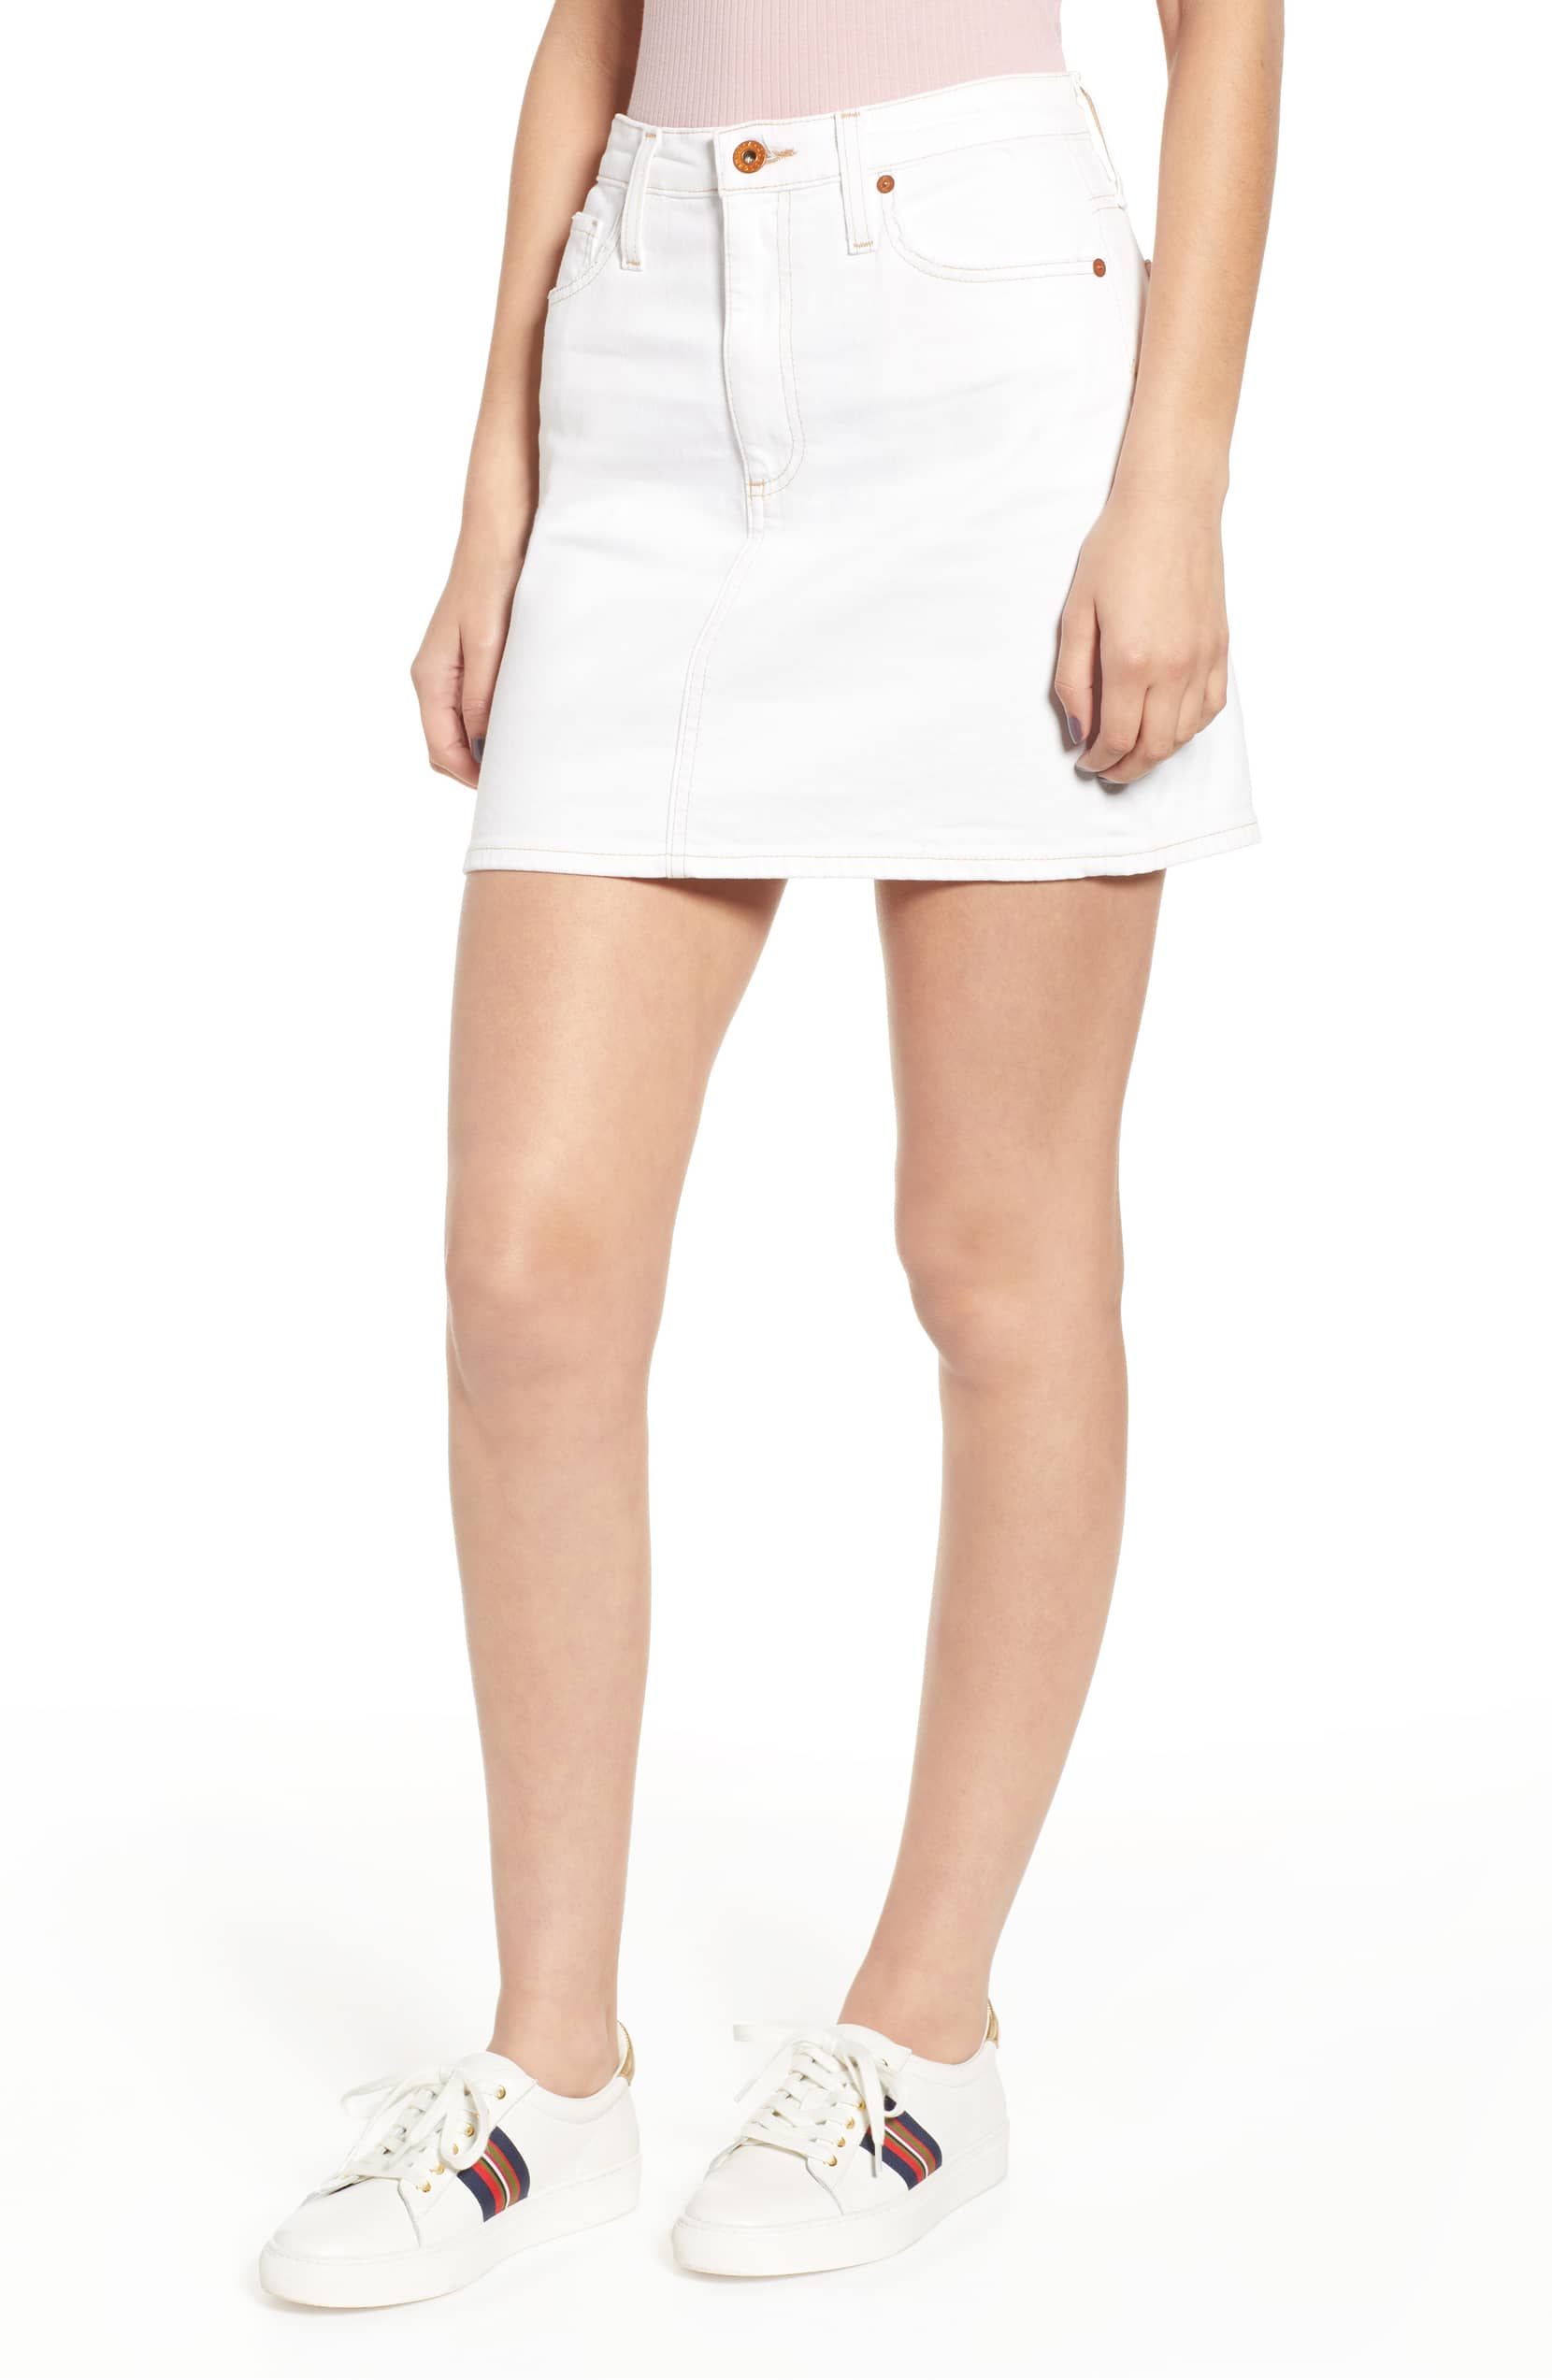 AG The Vera Skirt 1 Year Bare White – ShopBody com